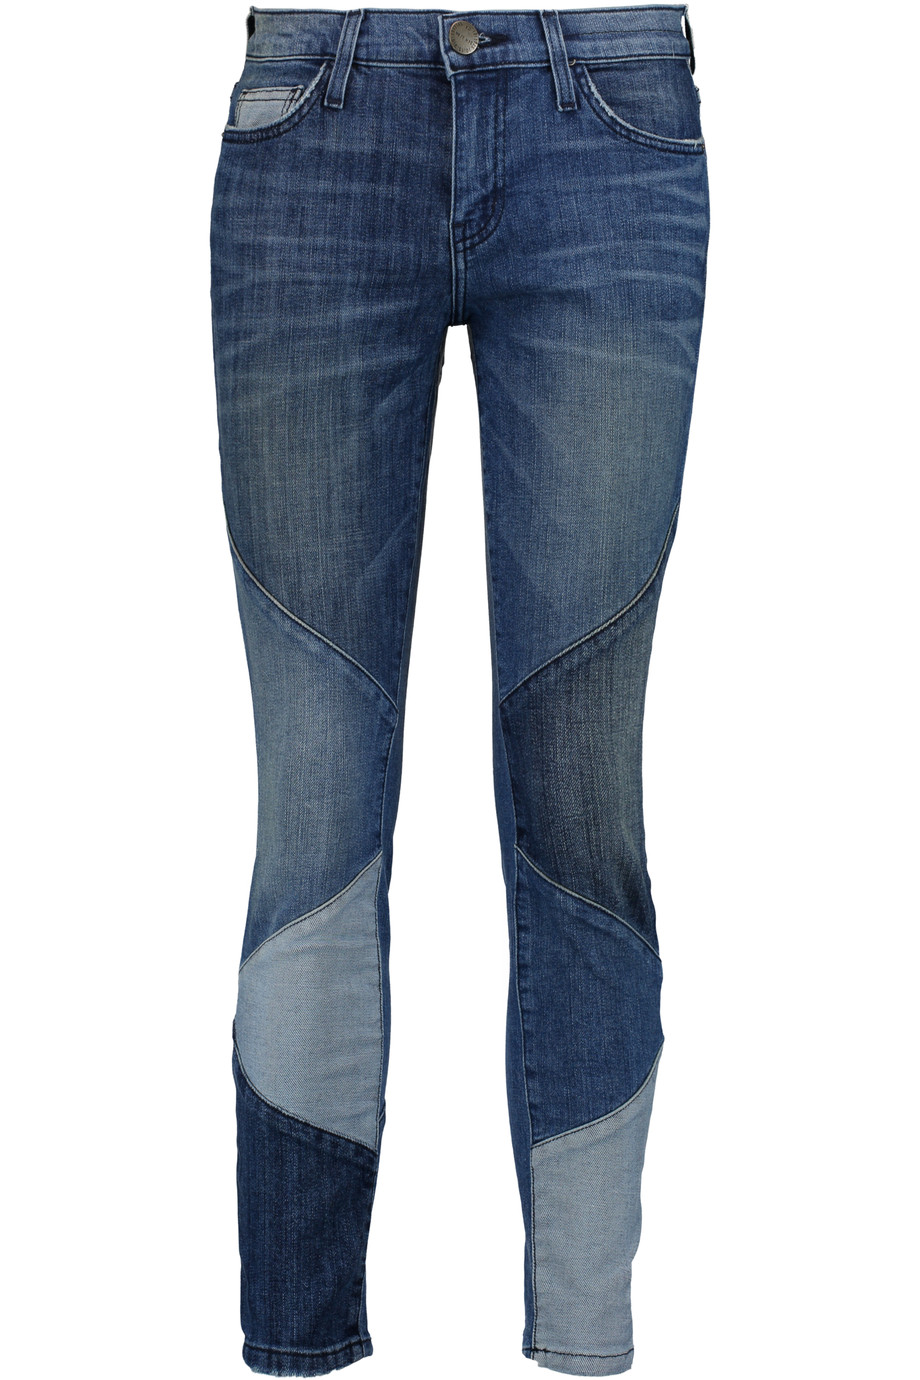 CURRENT/ELLIOTT PATCHWORK JEANS